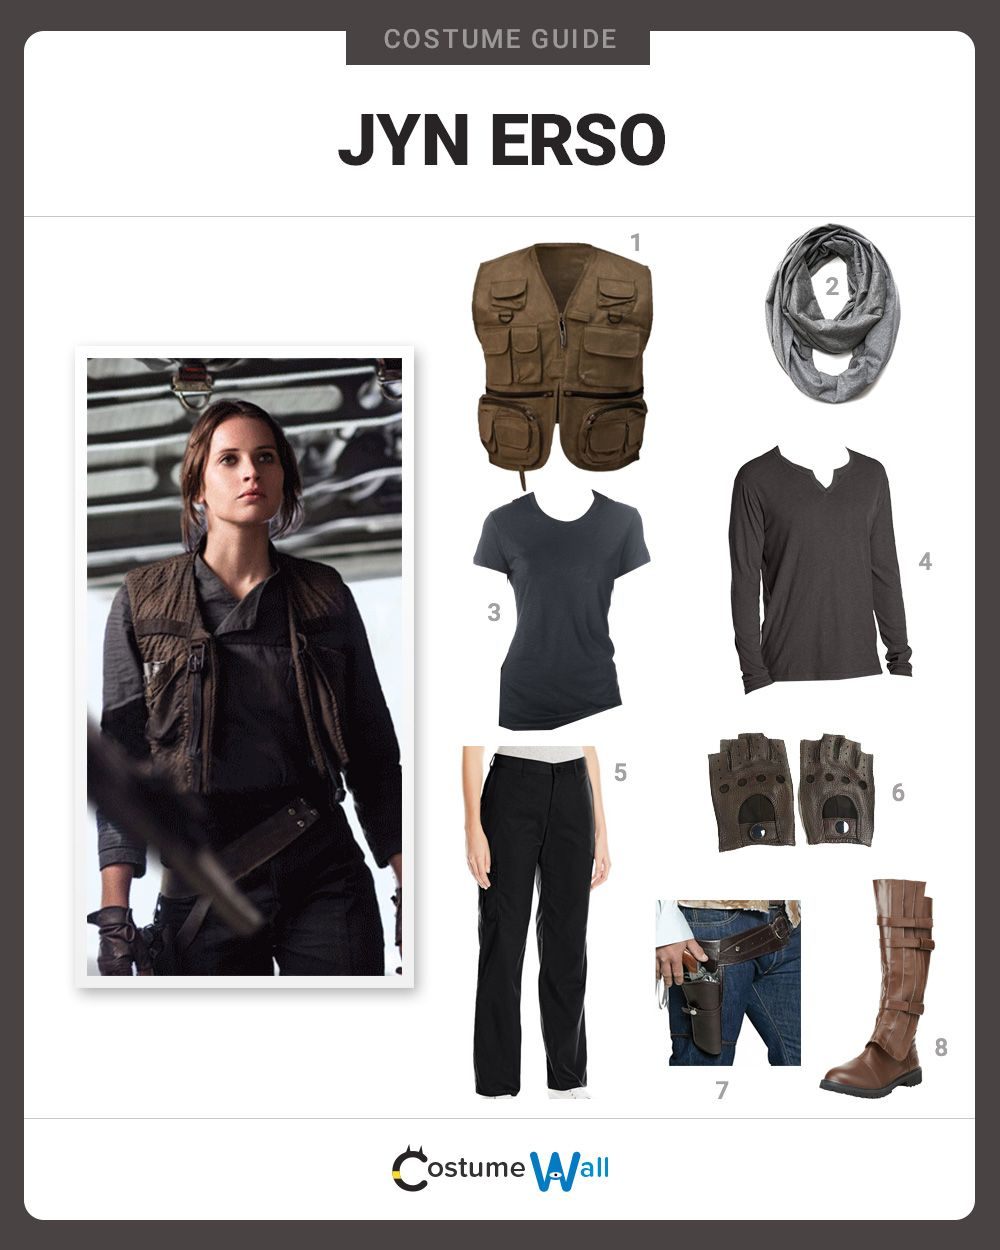 Dress like jyn erso costume and cosplay guide pinterest get into costume as jyn erso portrayed by felicity jones the hero from the movie rogue one a star wars story solutioingenieria Image collections